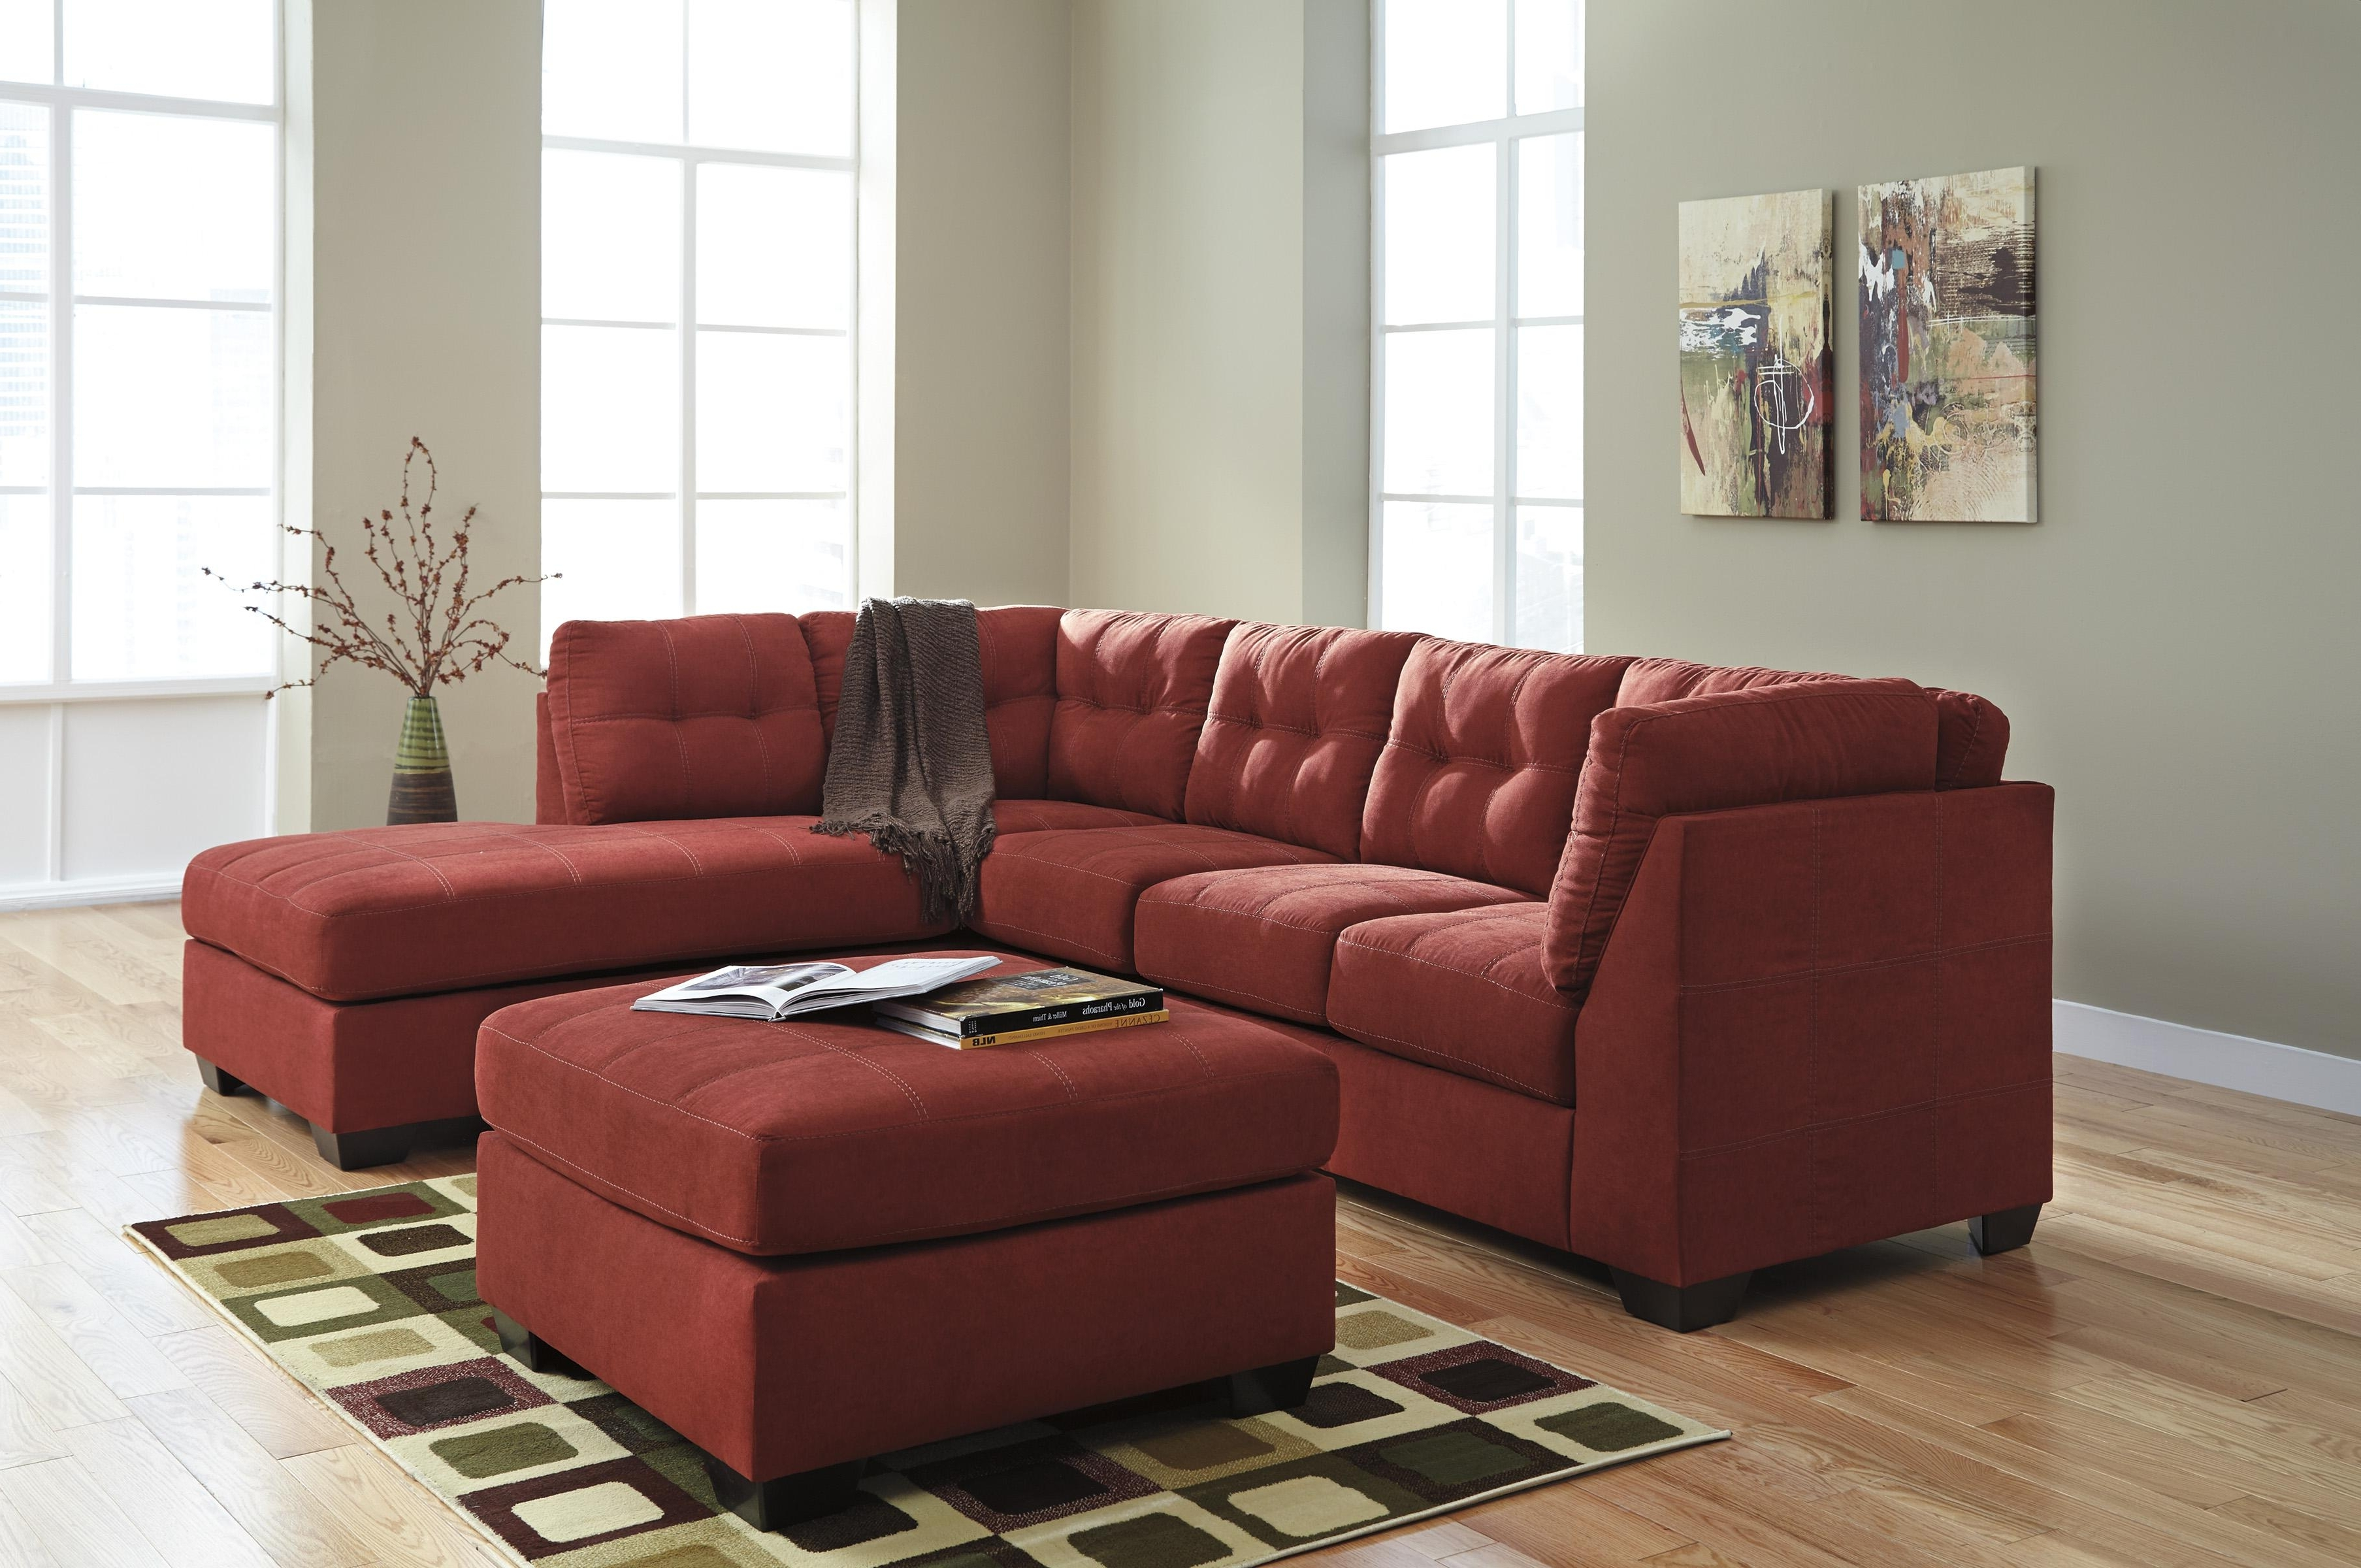 2018 Benchcraft Maier – Sienna 2 Piece Sectional W/ Sleeper Sofa Pertaining To 2 Piece Sectional Sofas With Chaise (View 7 of 15)